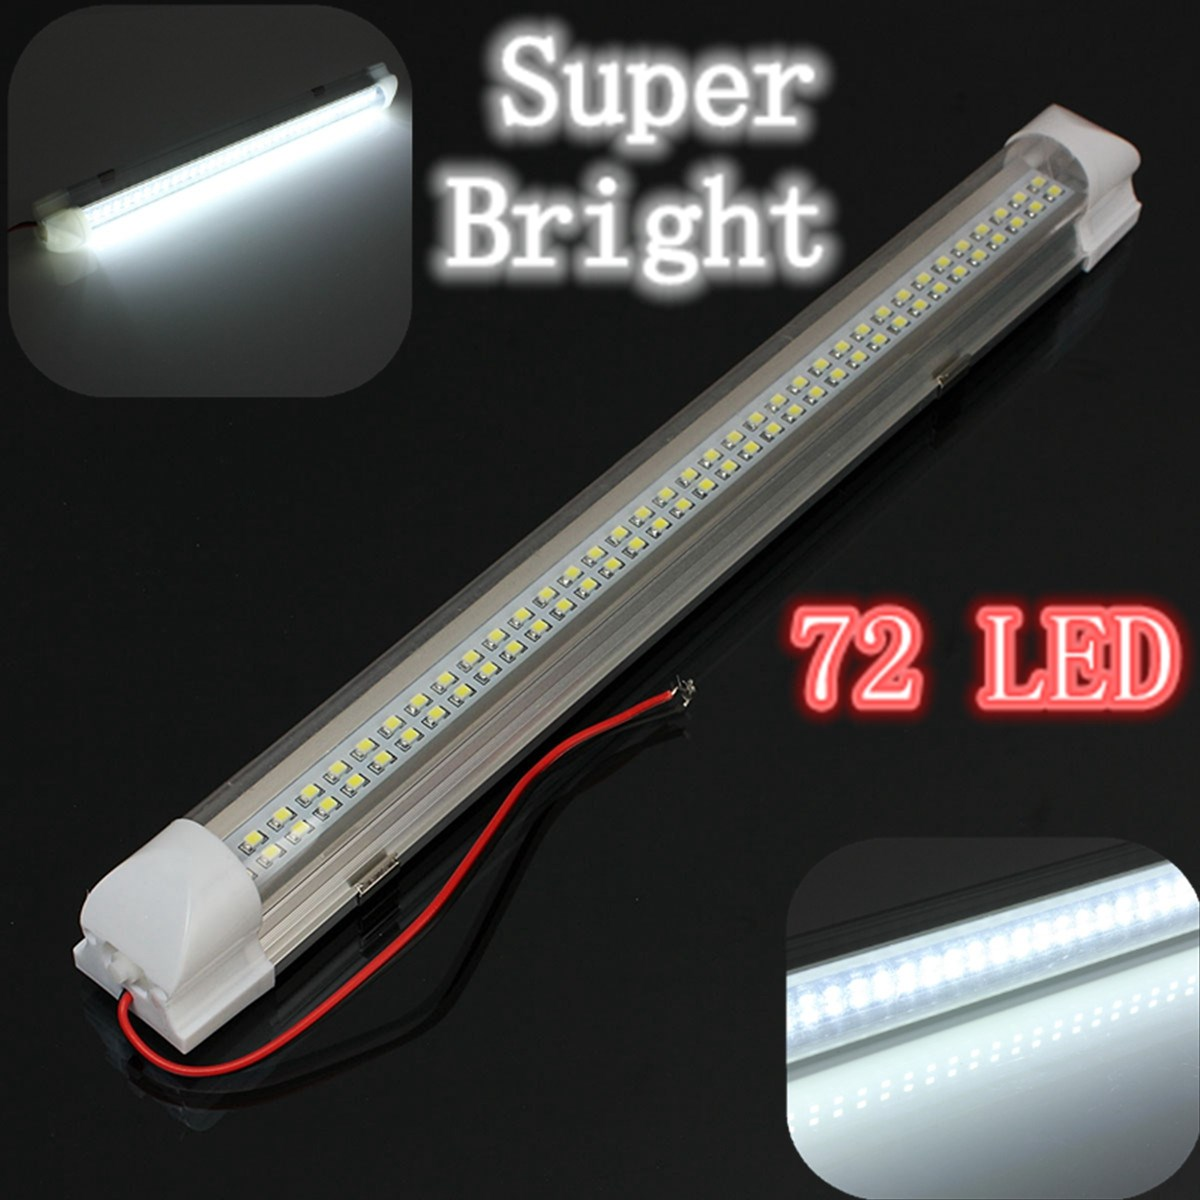 New 12v universal car auto caravan interior 72 led white light new 12v universal car auto caravan interior 72 led white light strip bar 340mm lamp onoff switch in signal lamp from automobiles motorcycles on aloadofball Choice Image